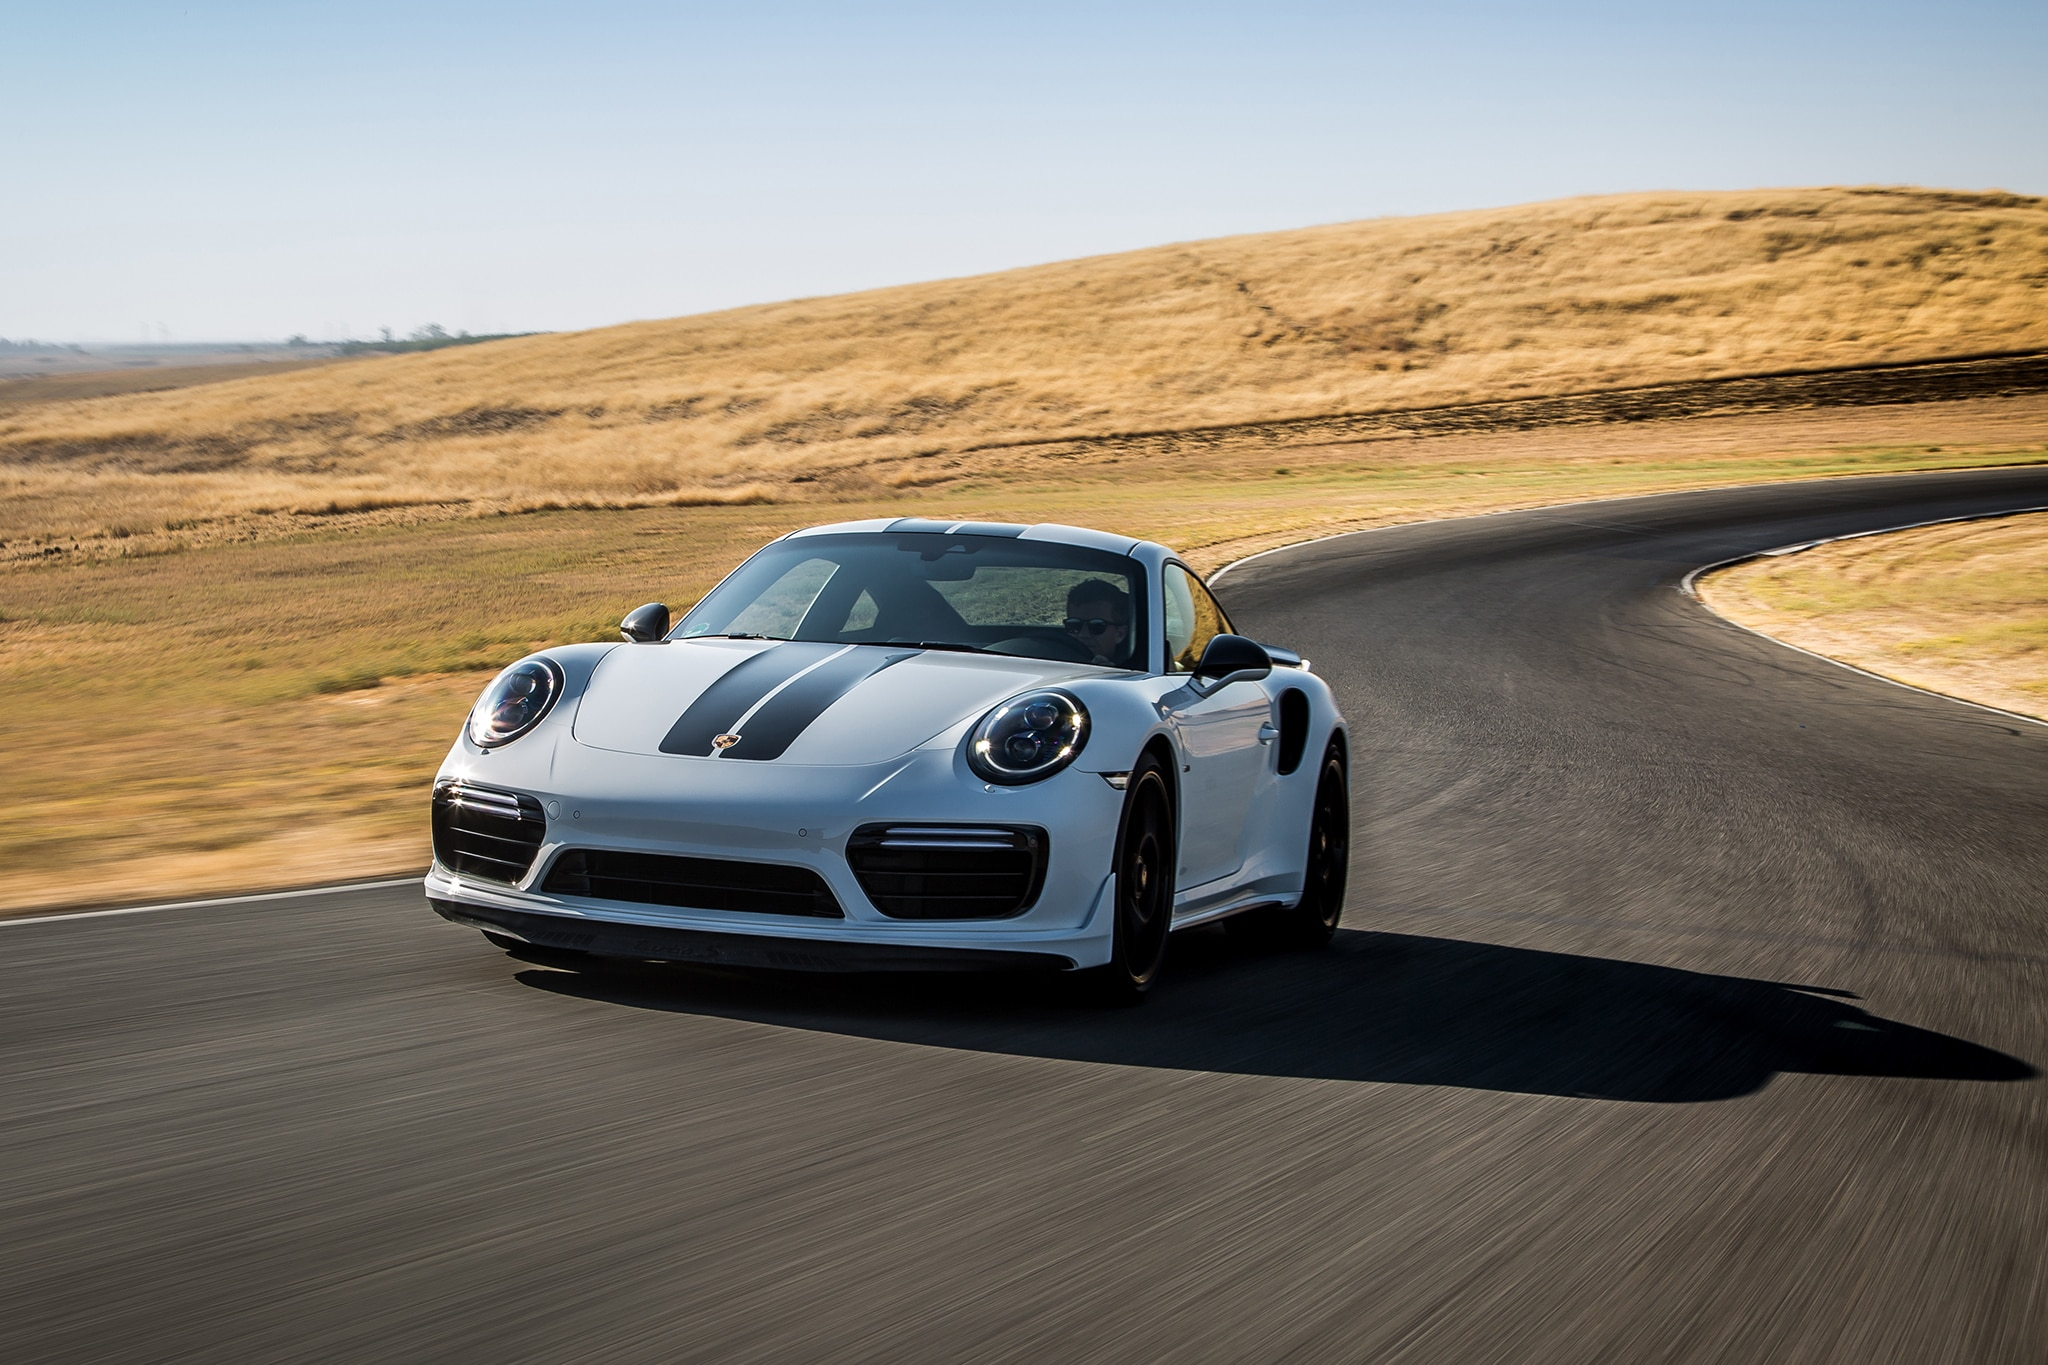 2018 Porsche 911 Turbo S Exclusive Front Three Quarter In Motion 07